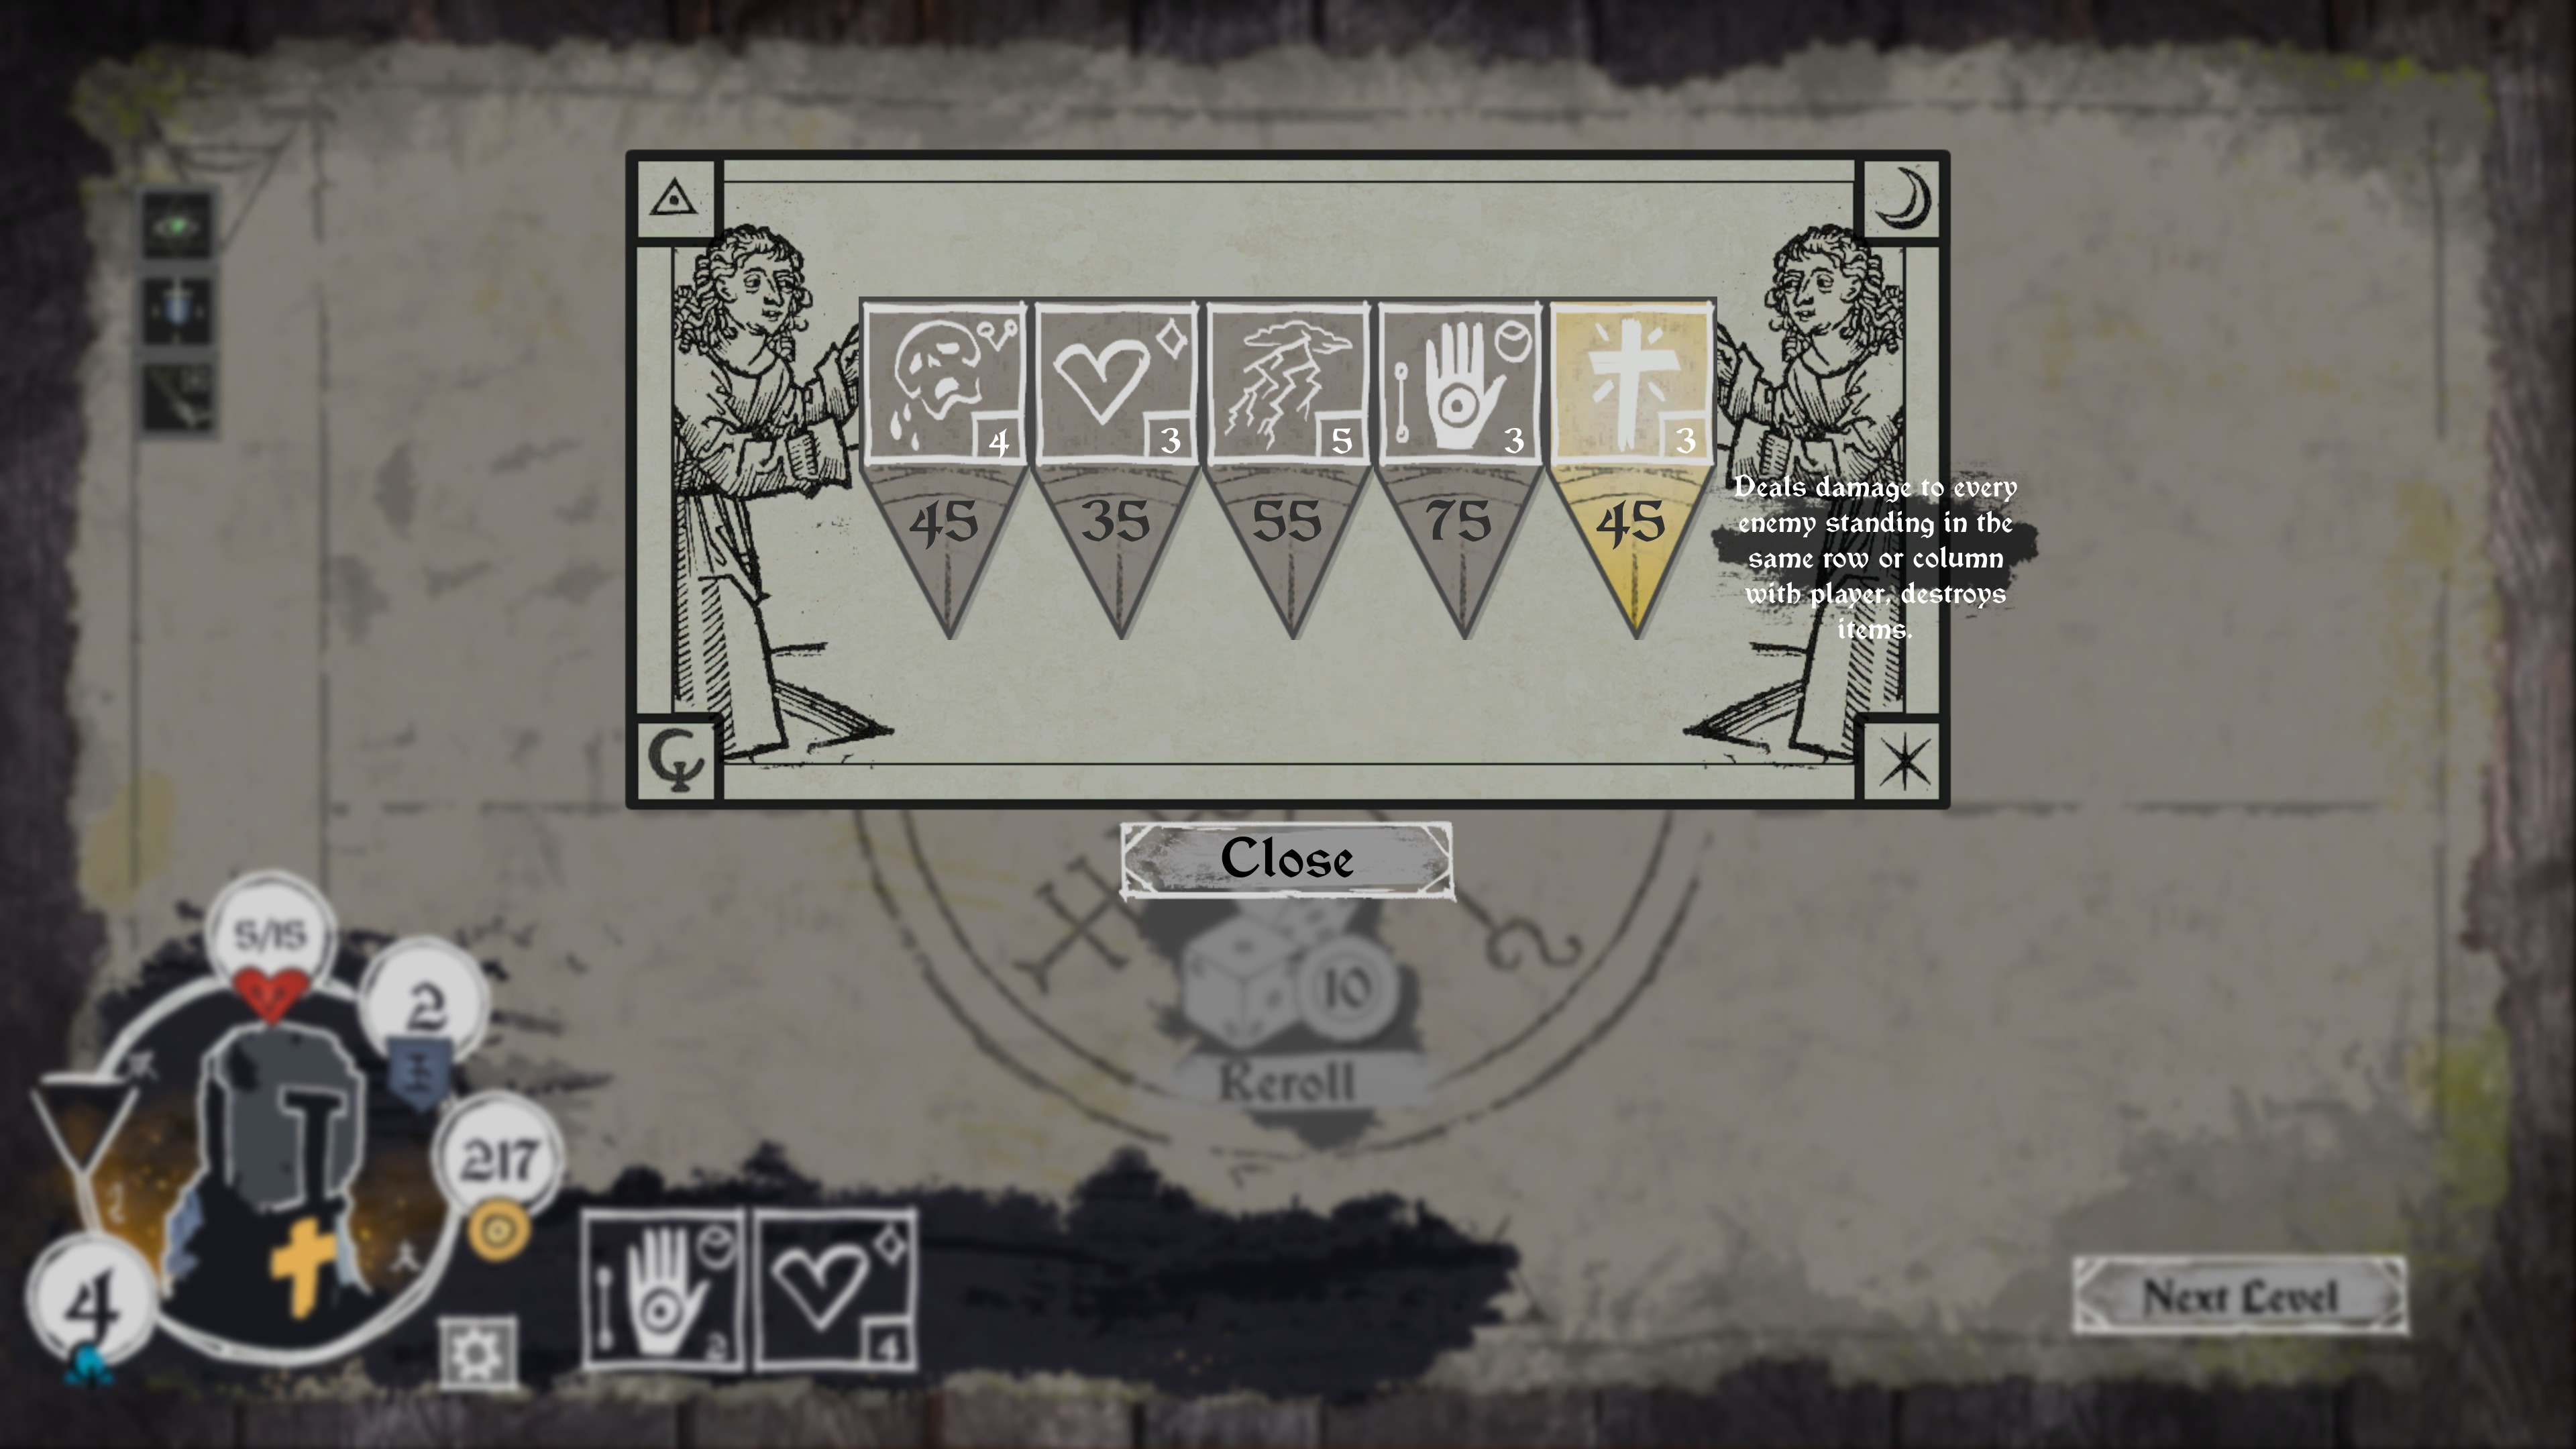 45 gold to buy a single-use spell that deals 3 damage to every enemy standing in the same row or column with the player